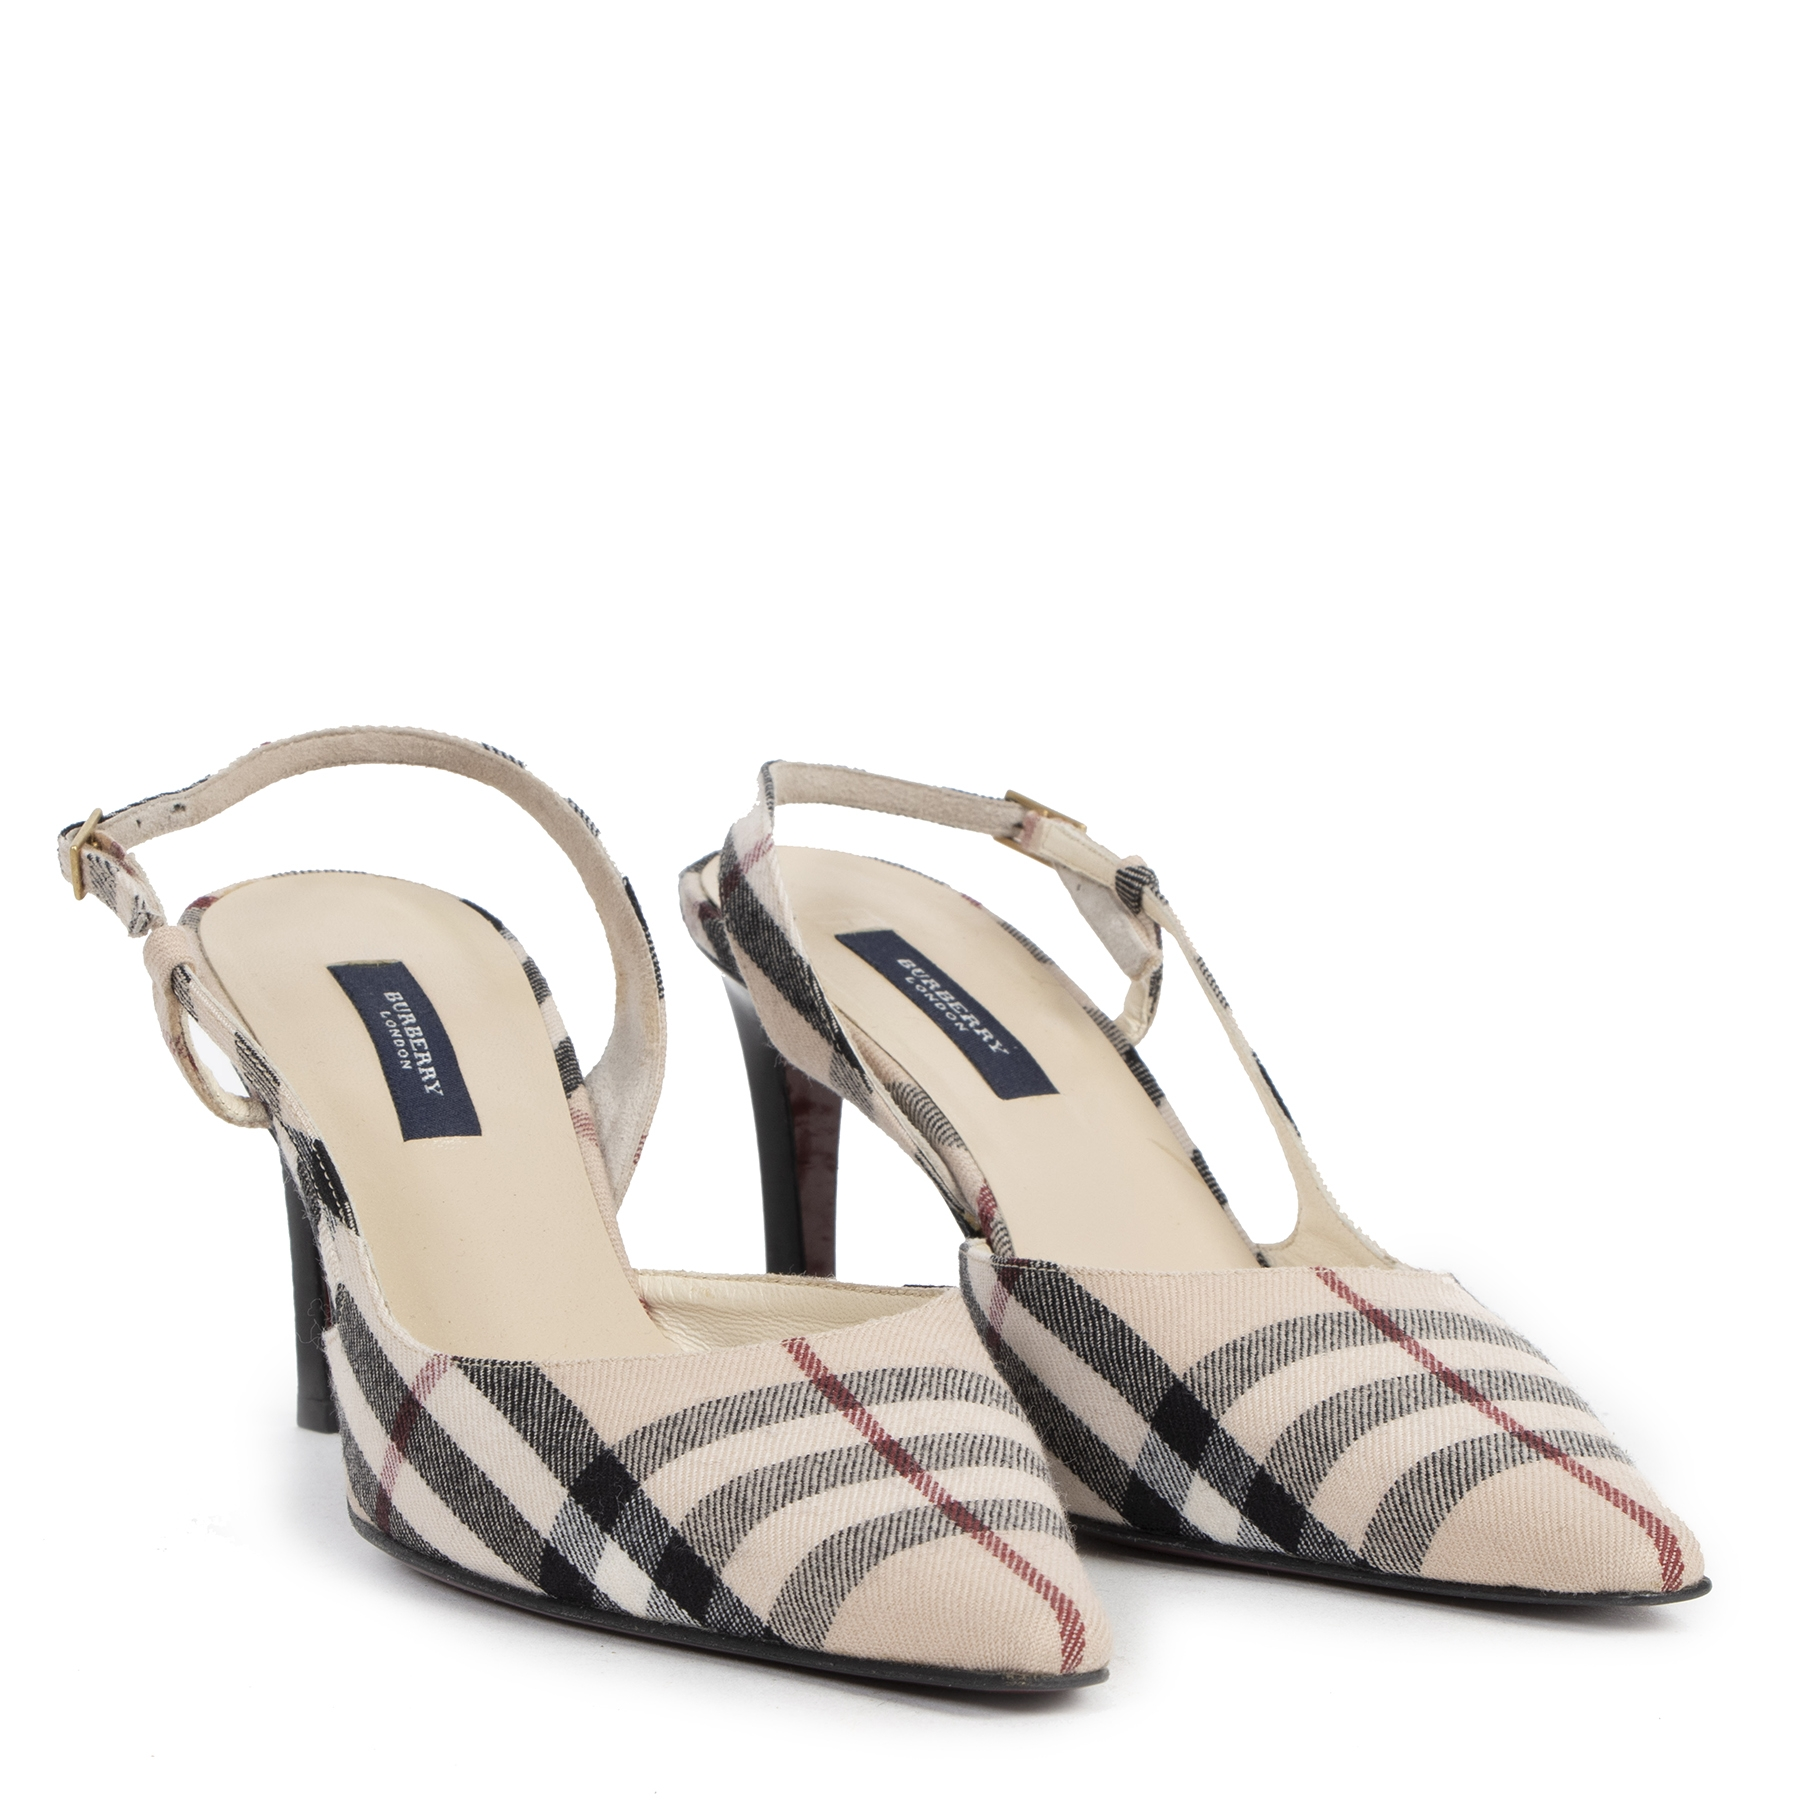 Authentic secondhand Burberry Nova Check Slingback Pumps - Size 39,5 designer shoes high heels luxury vintage webshop fashion safe secure online shopping